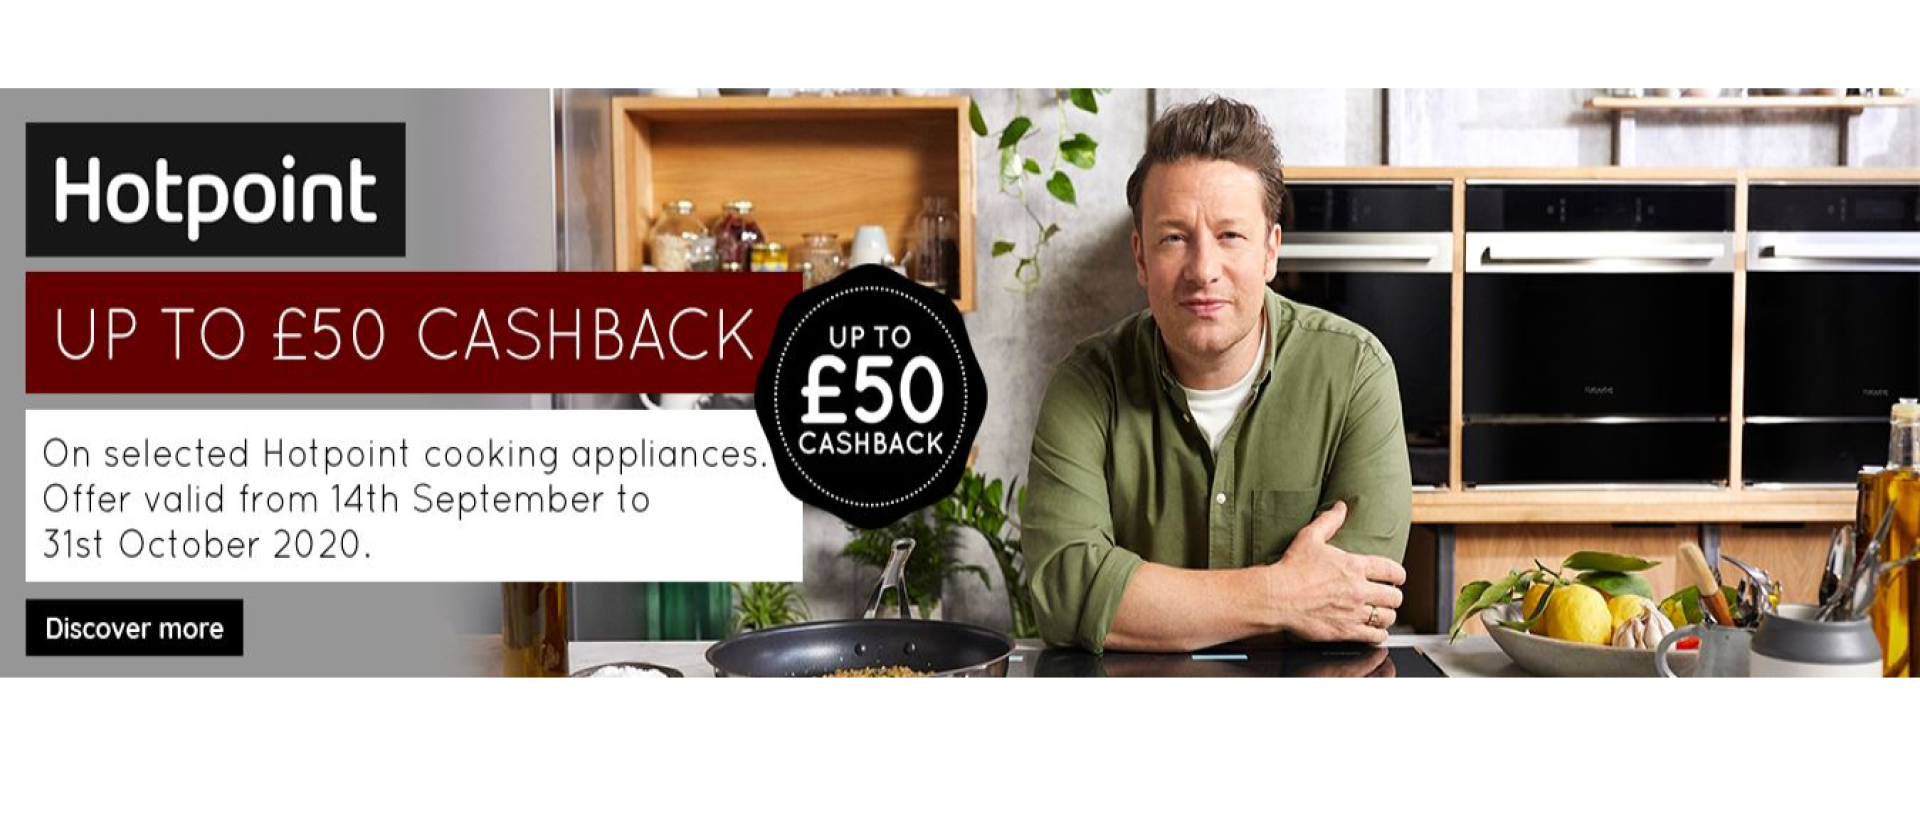 hotpoint cash back